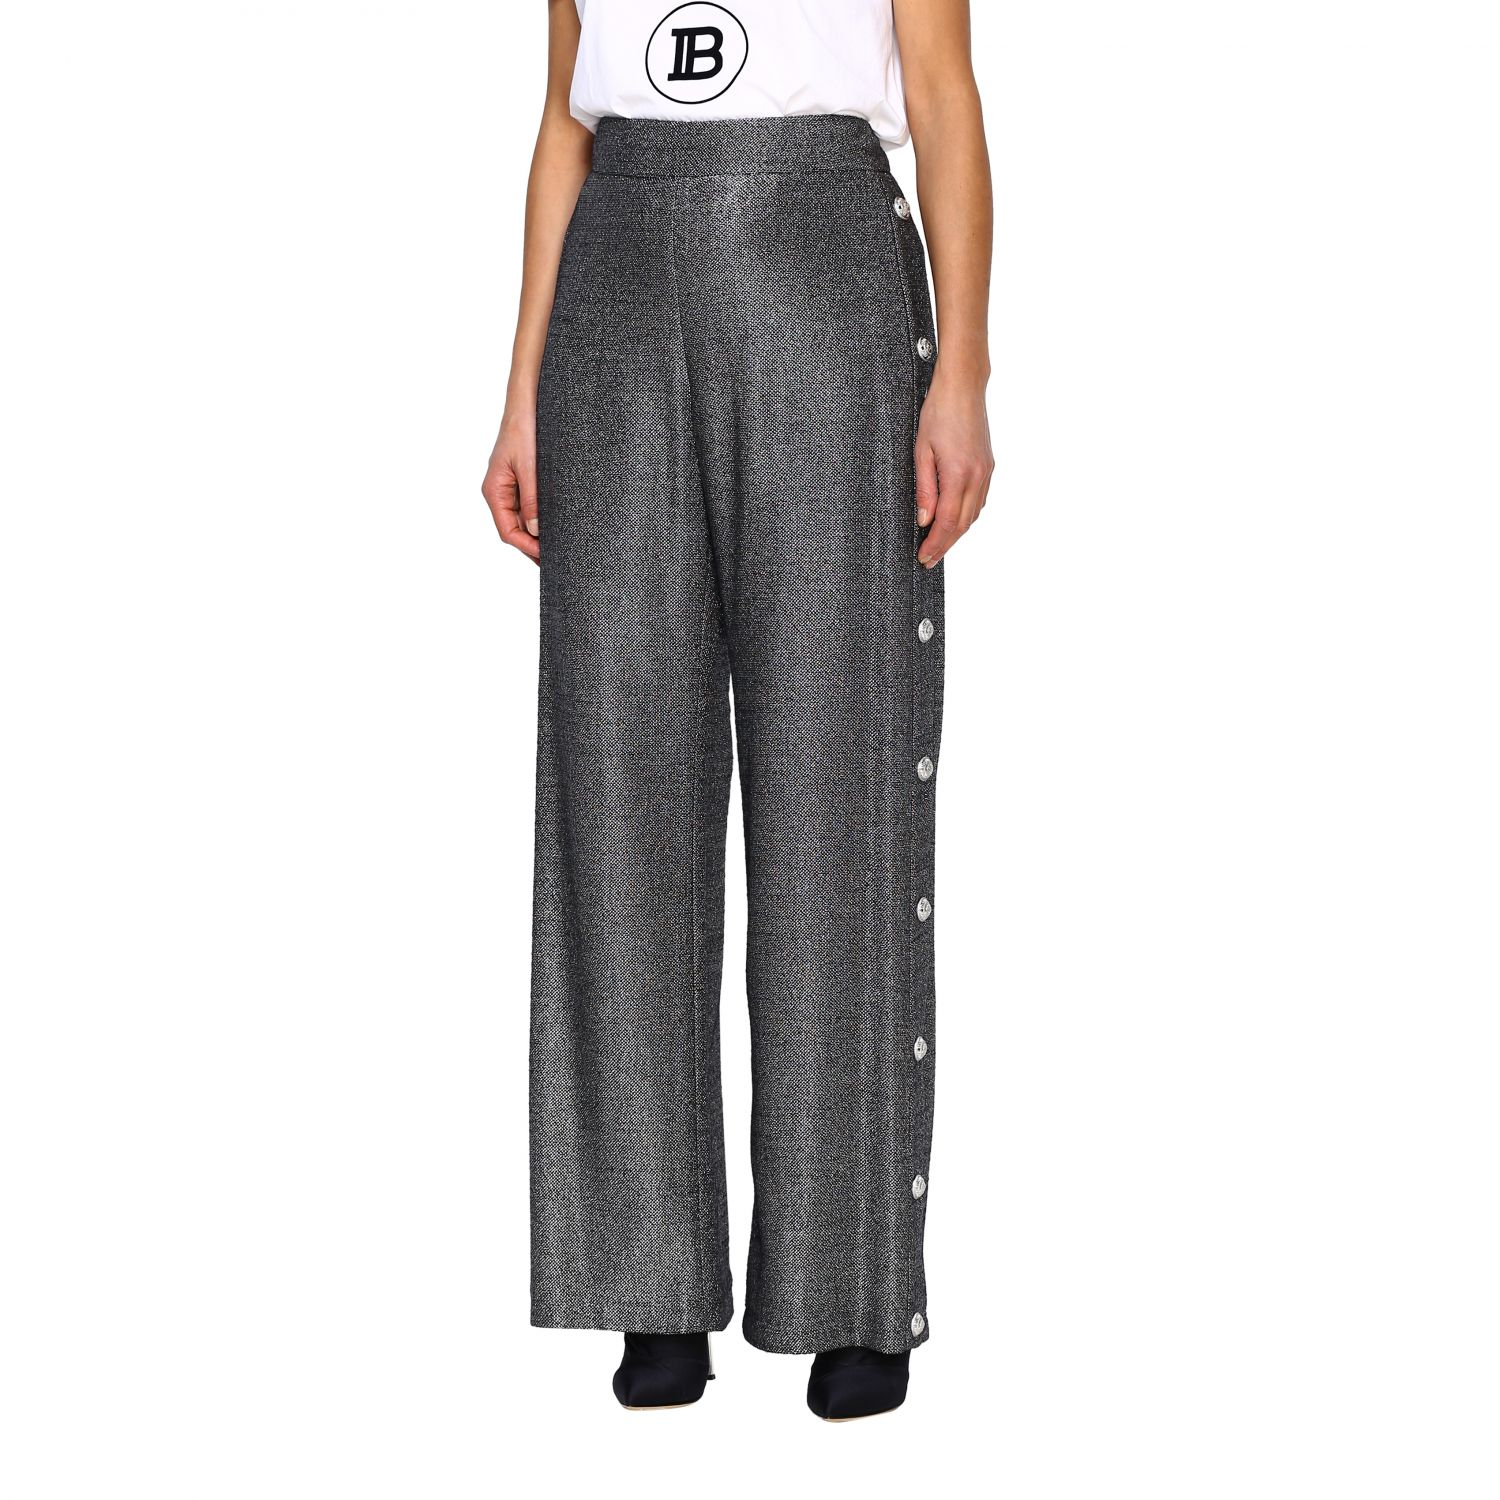 Trousers Balmain: Wide Balmain trousers in lurex knit with jewel buttons black 4